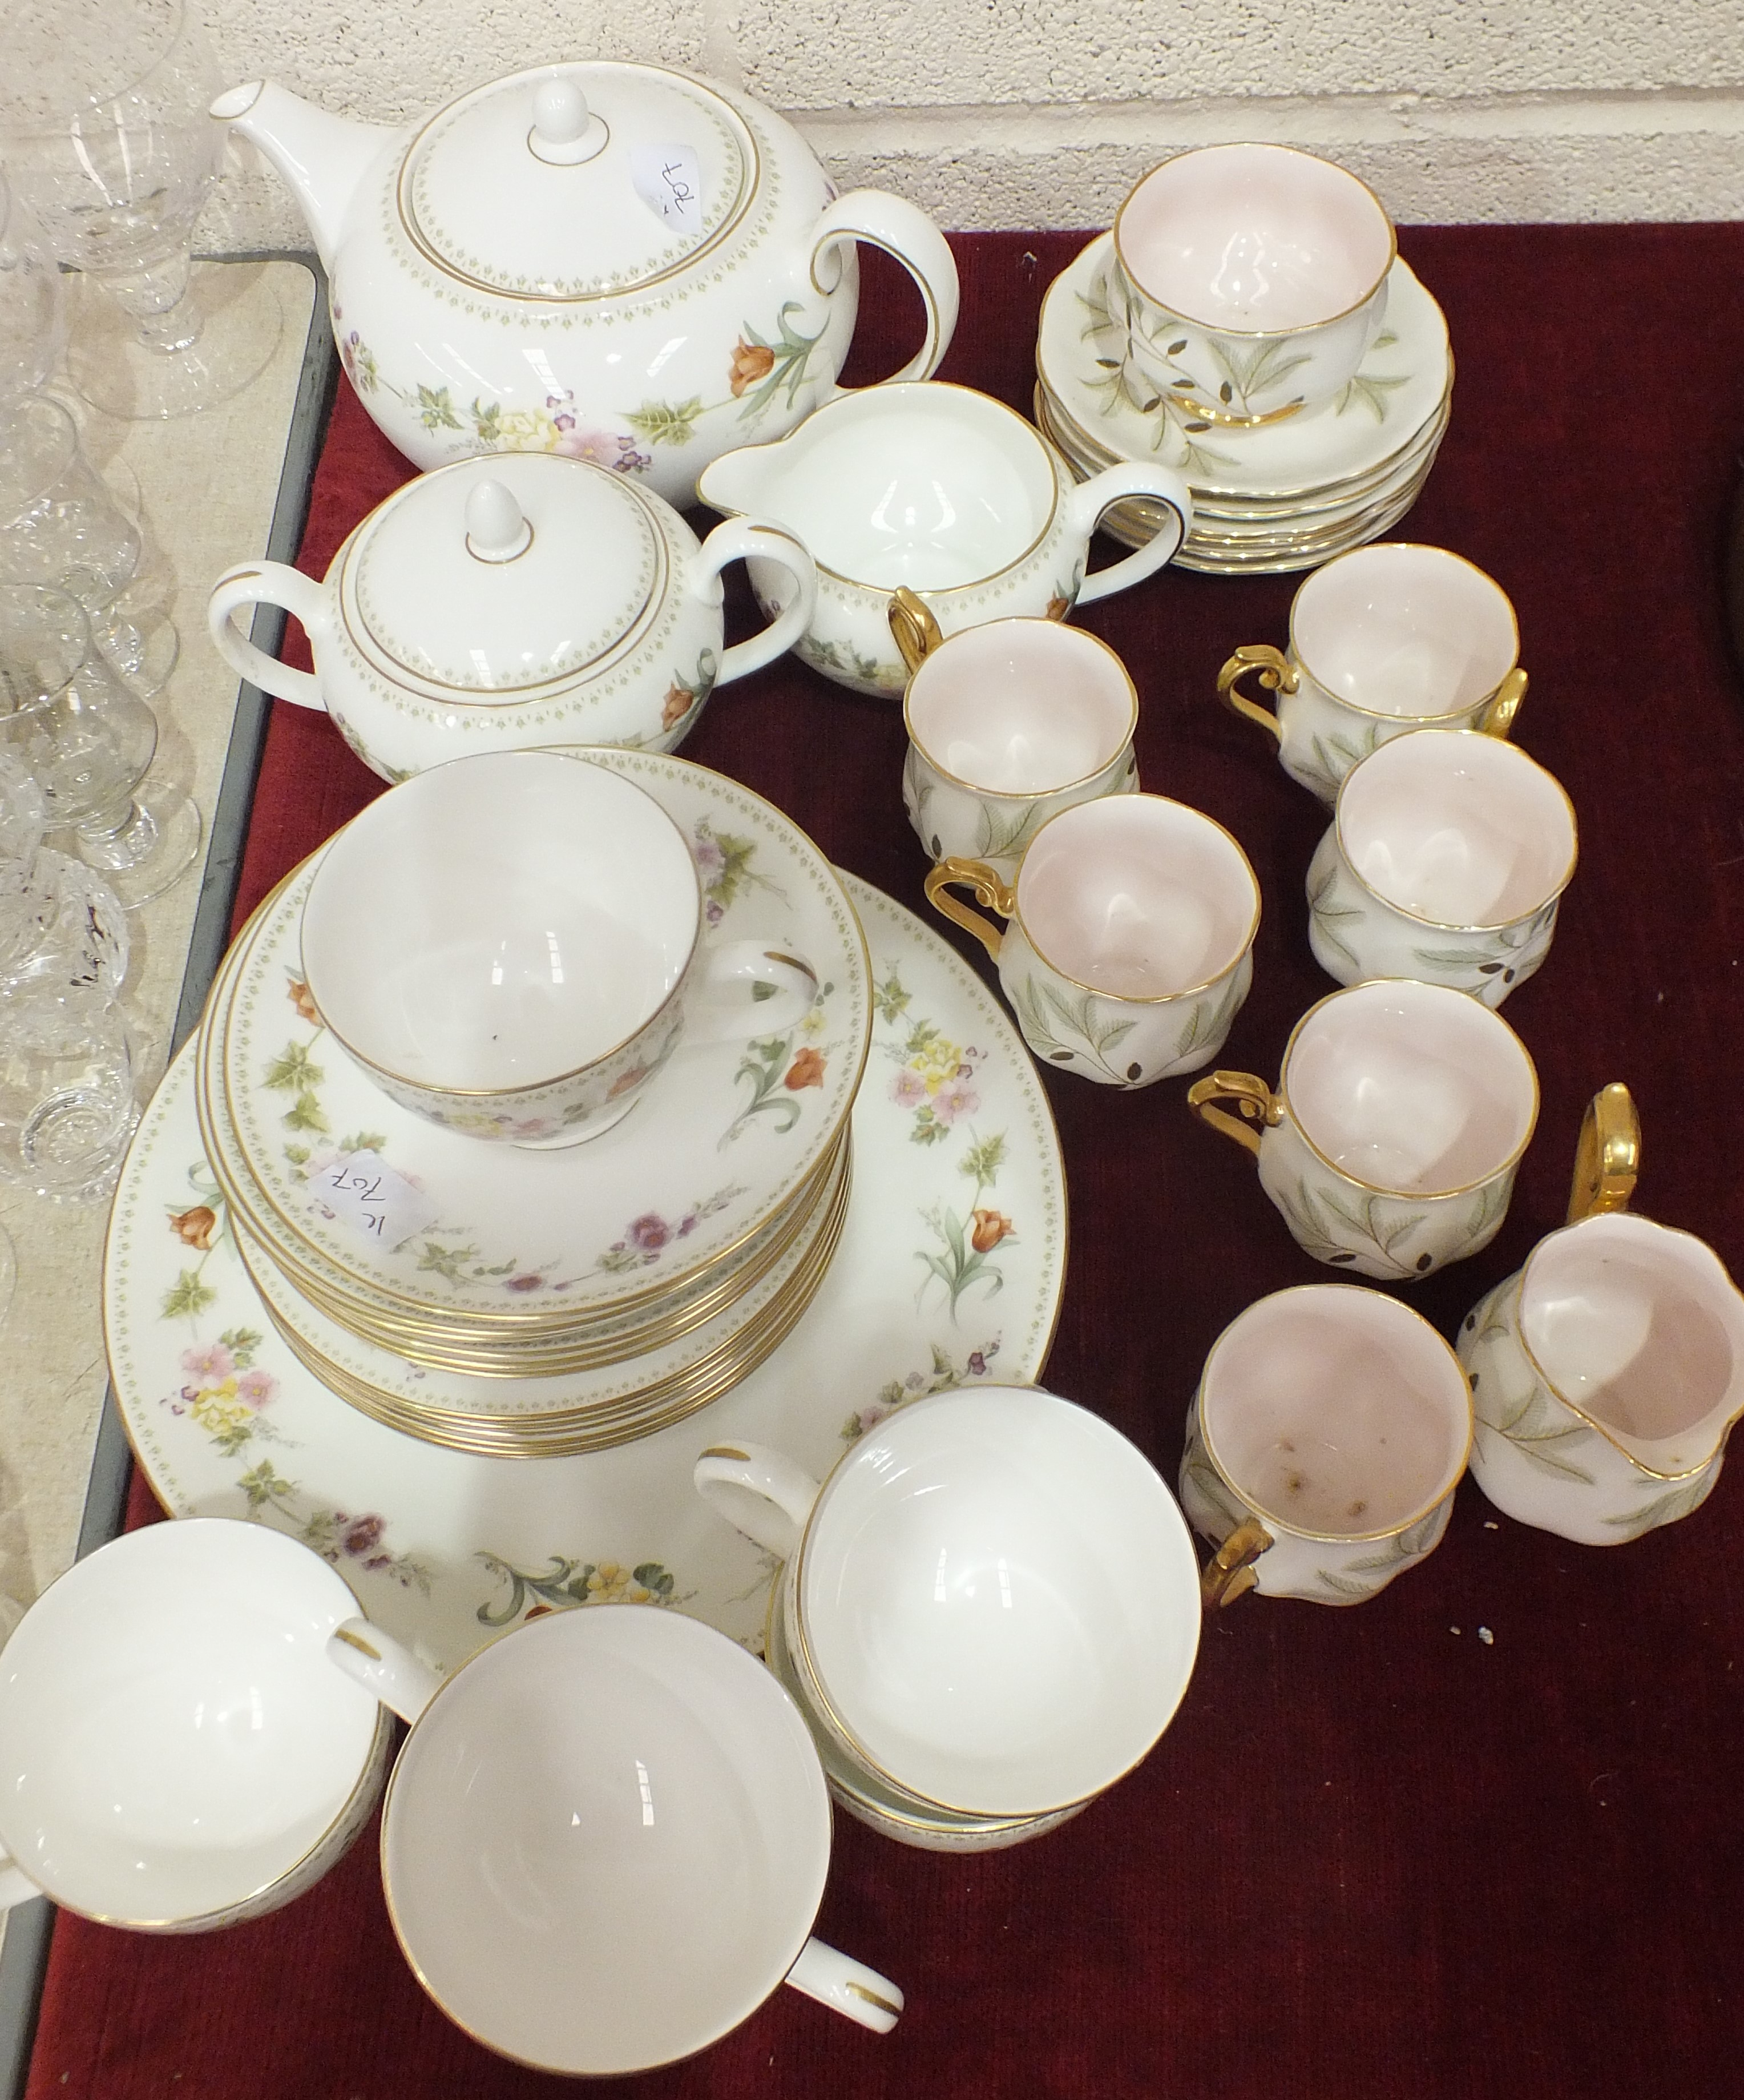 Lot 66 - A Wedgwood bone china tea service in the 'Mirabelle' pattern, 22 pieces, a Royal Albert 'Braemar'